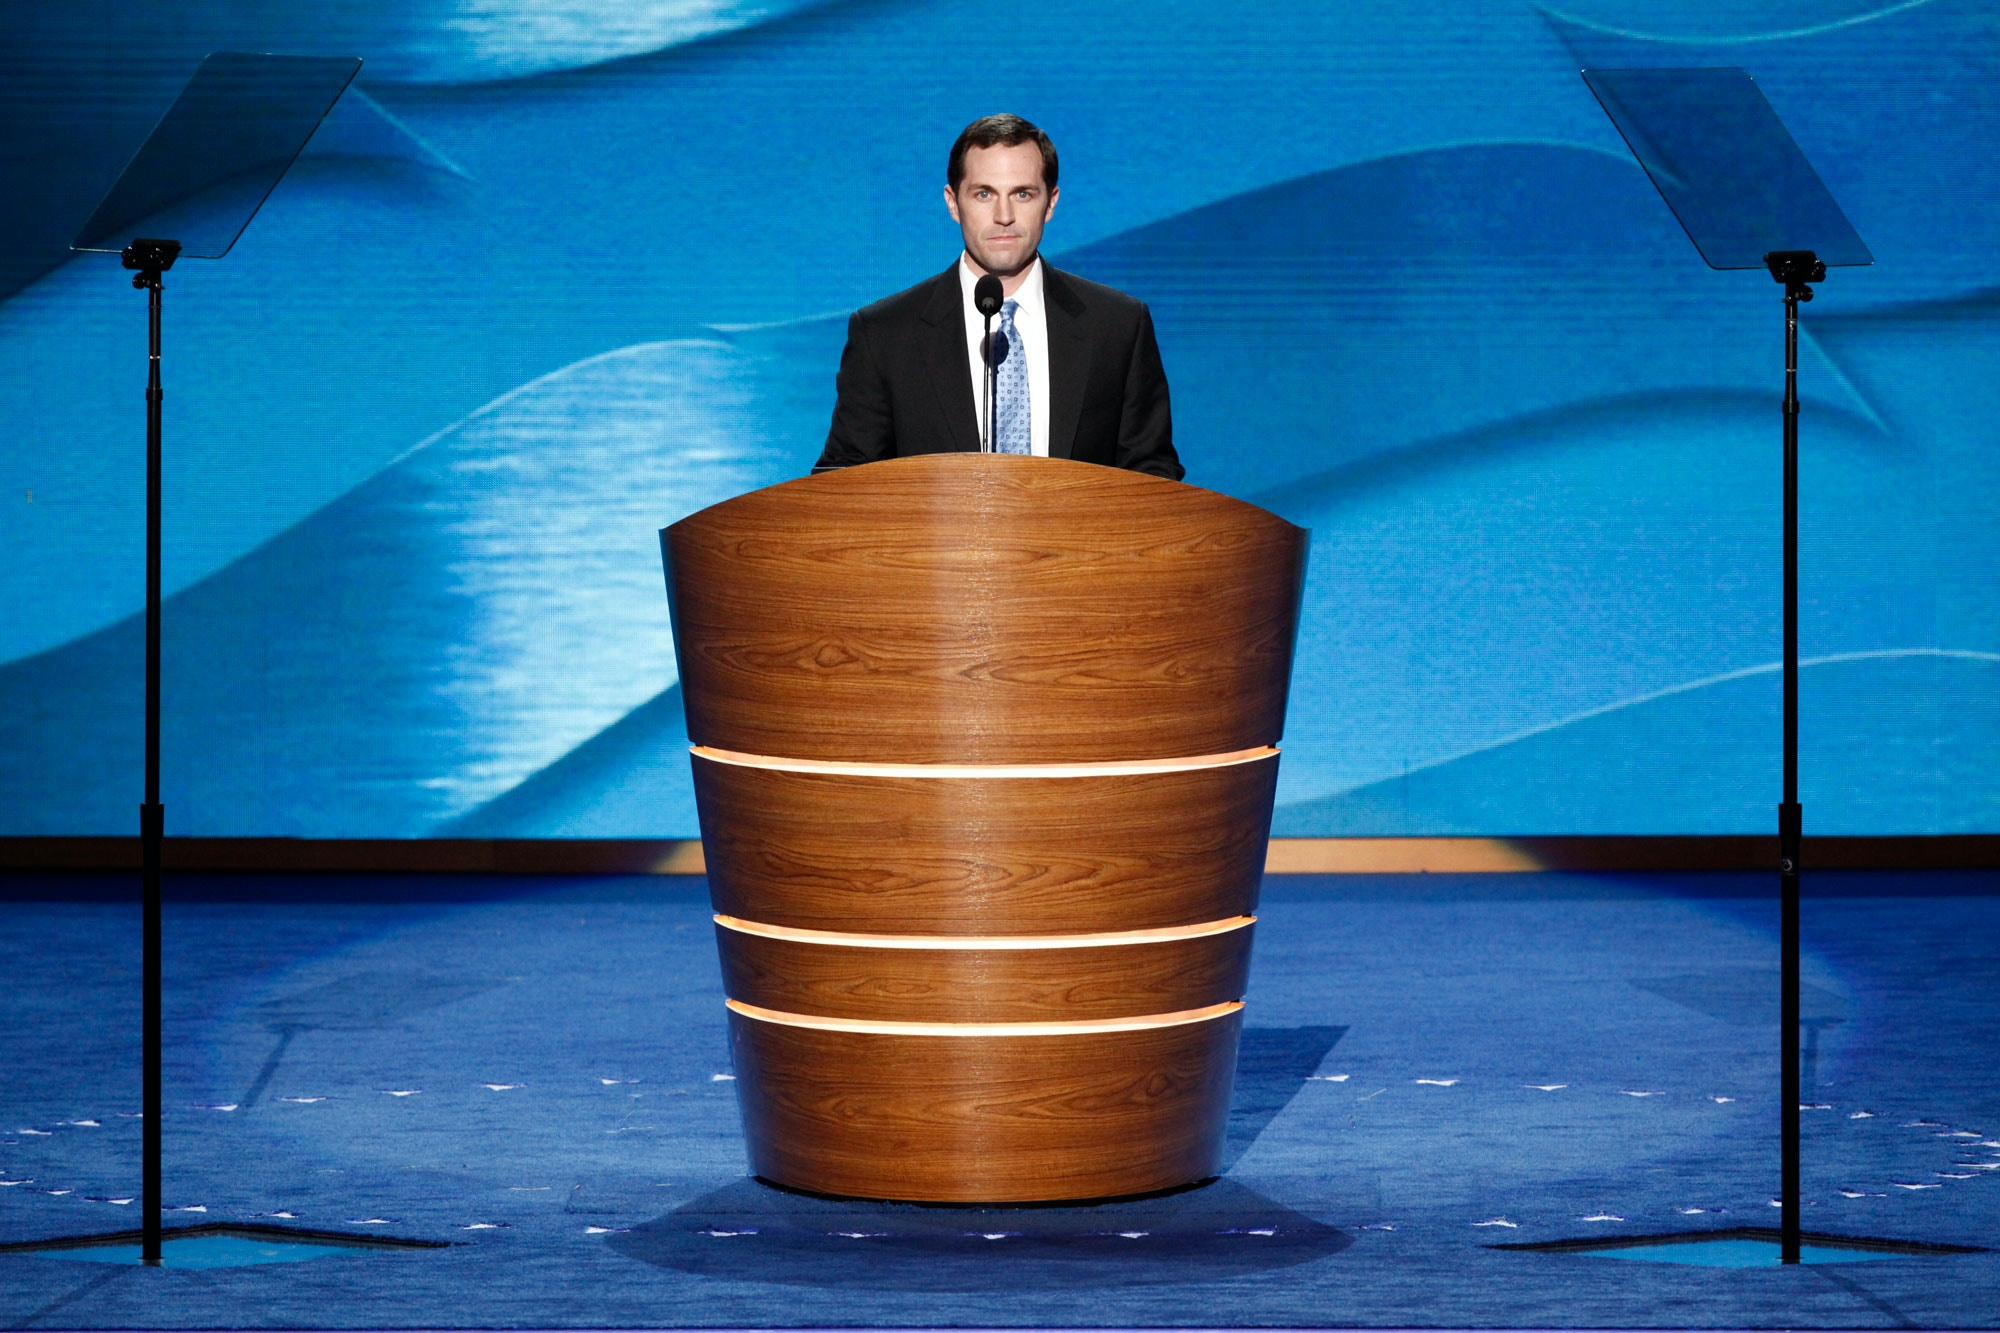 Jason Crow, a veteran and attorney, speaks during the Democratic National  Convention at the